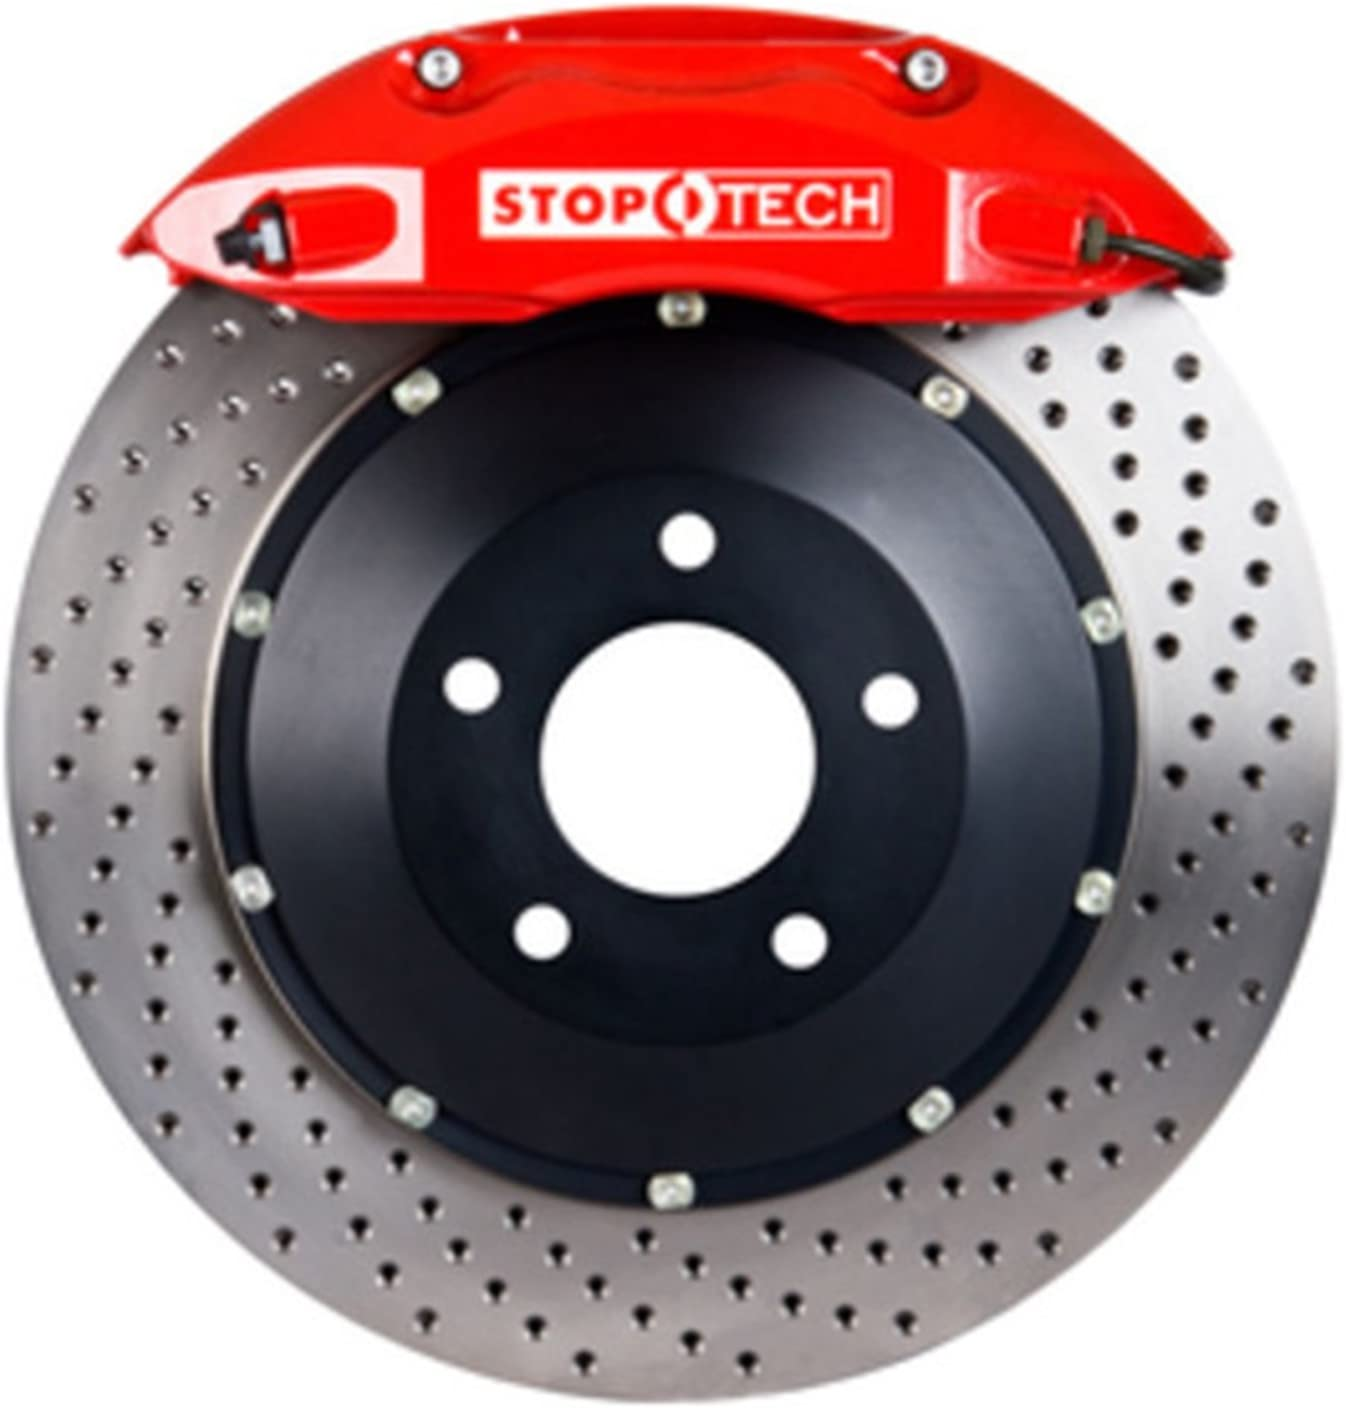 StopTech 83.159.4300.72 Front Brake Rotor